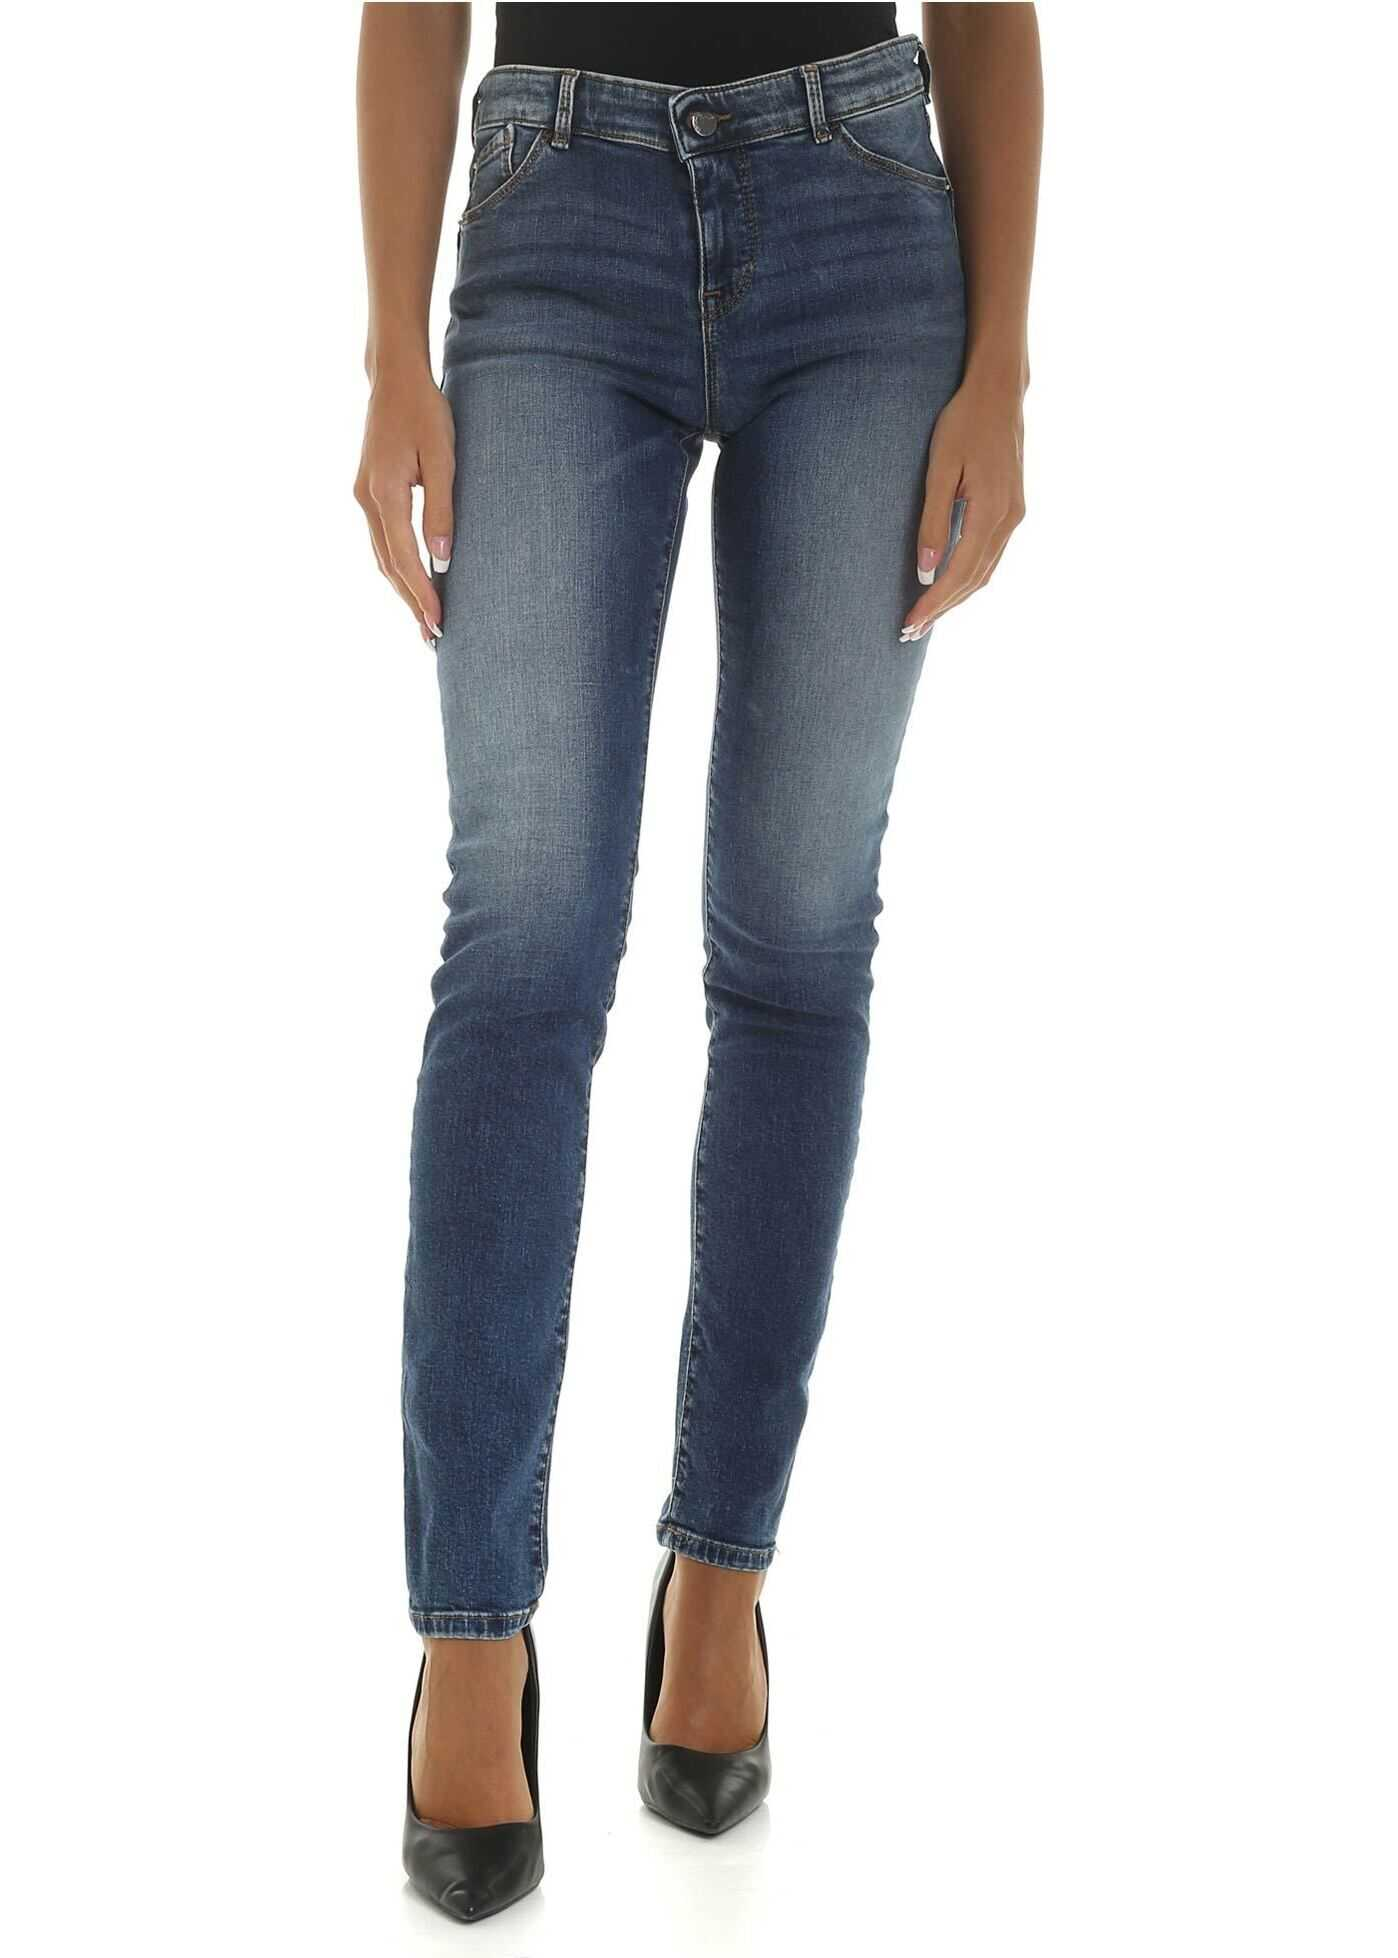 Emporio Armani Light Blue Jeans With Push-Up Effect Light Blue